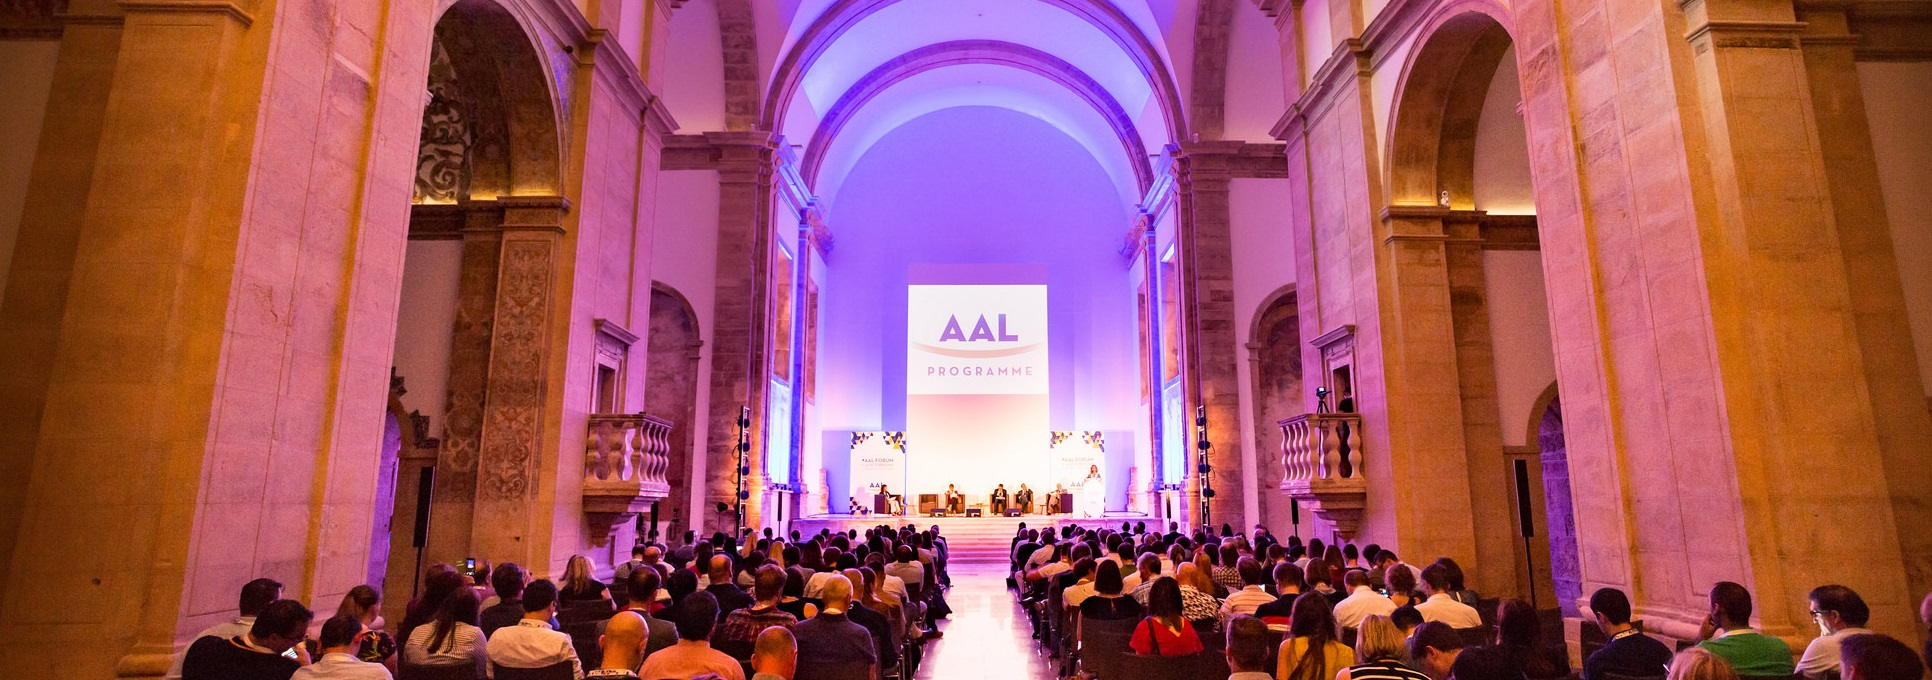 AAL Forum 2017 Plenary session banner